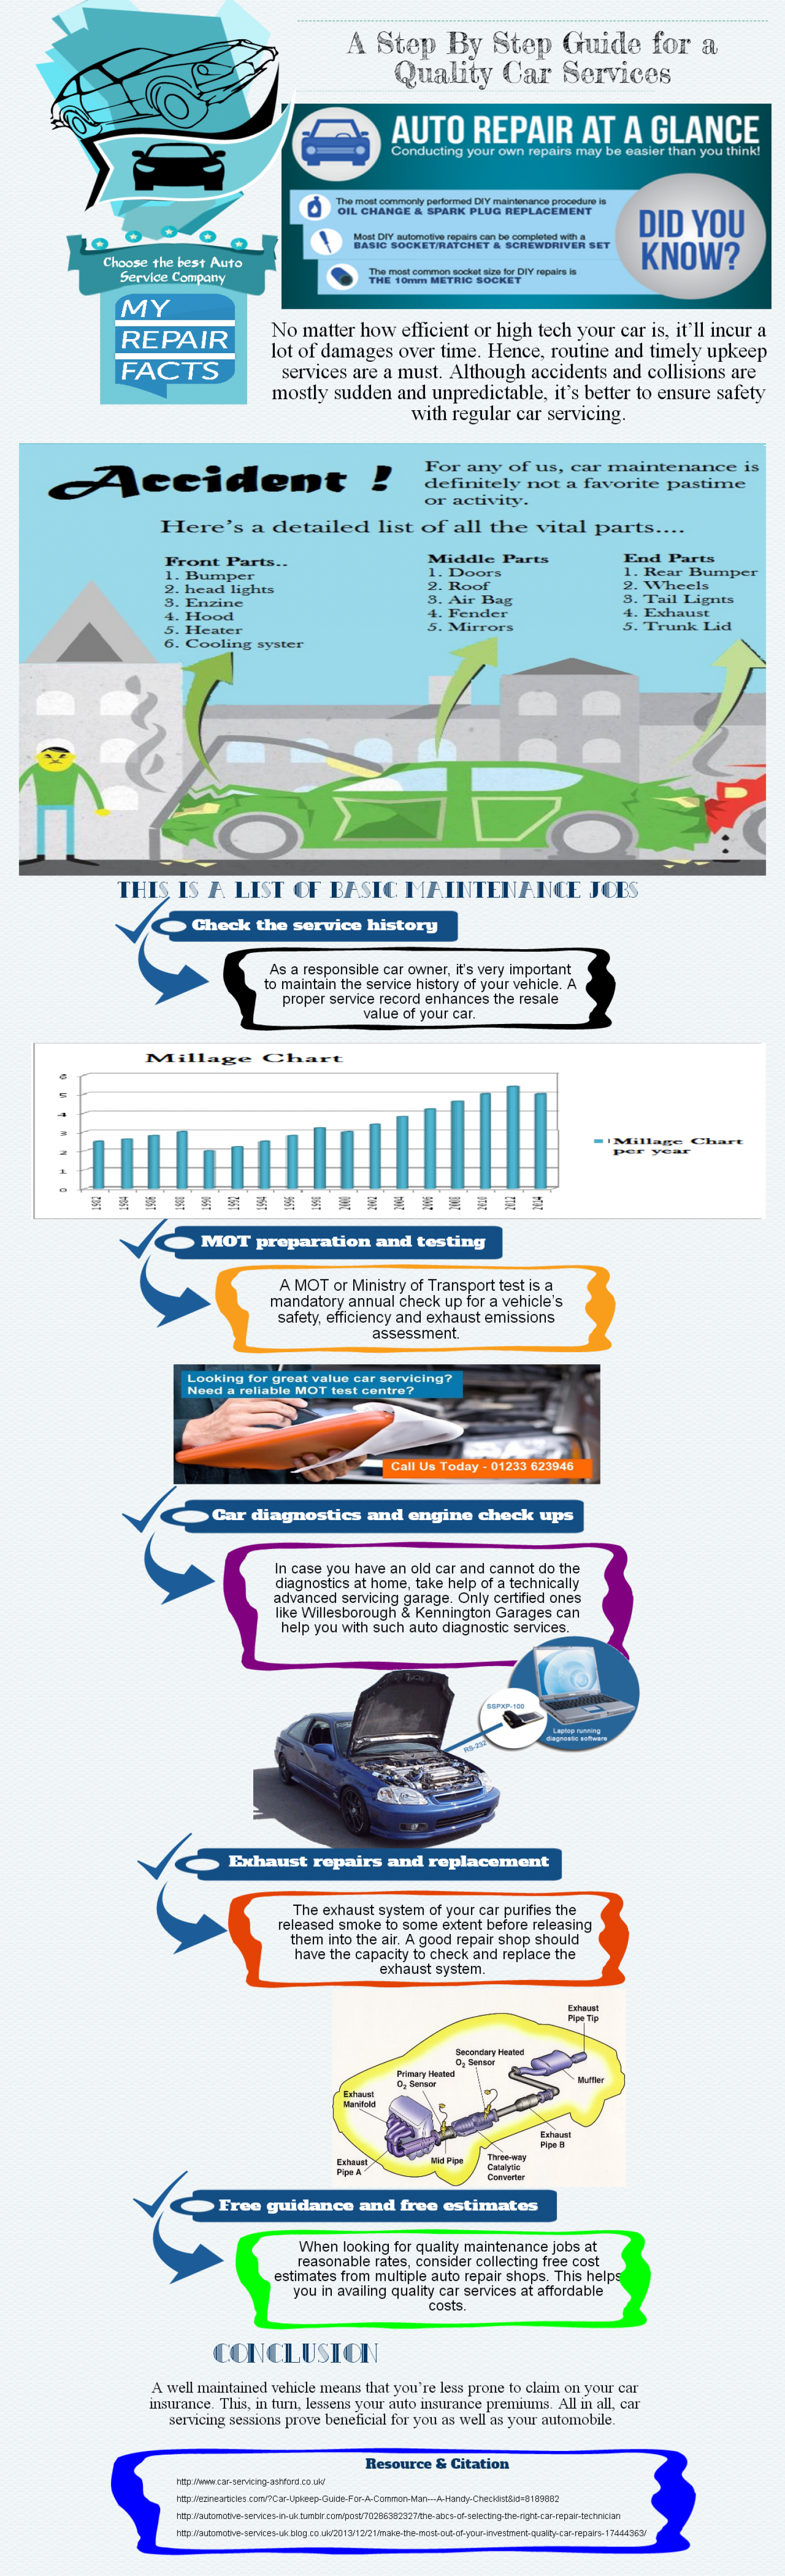 Car Repair and MOT Testing Services in Ashford Infographic